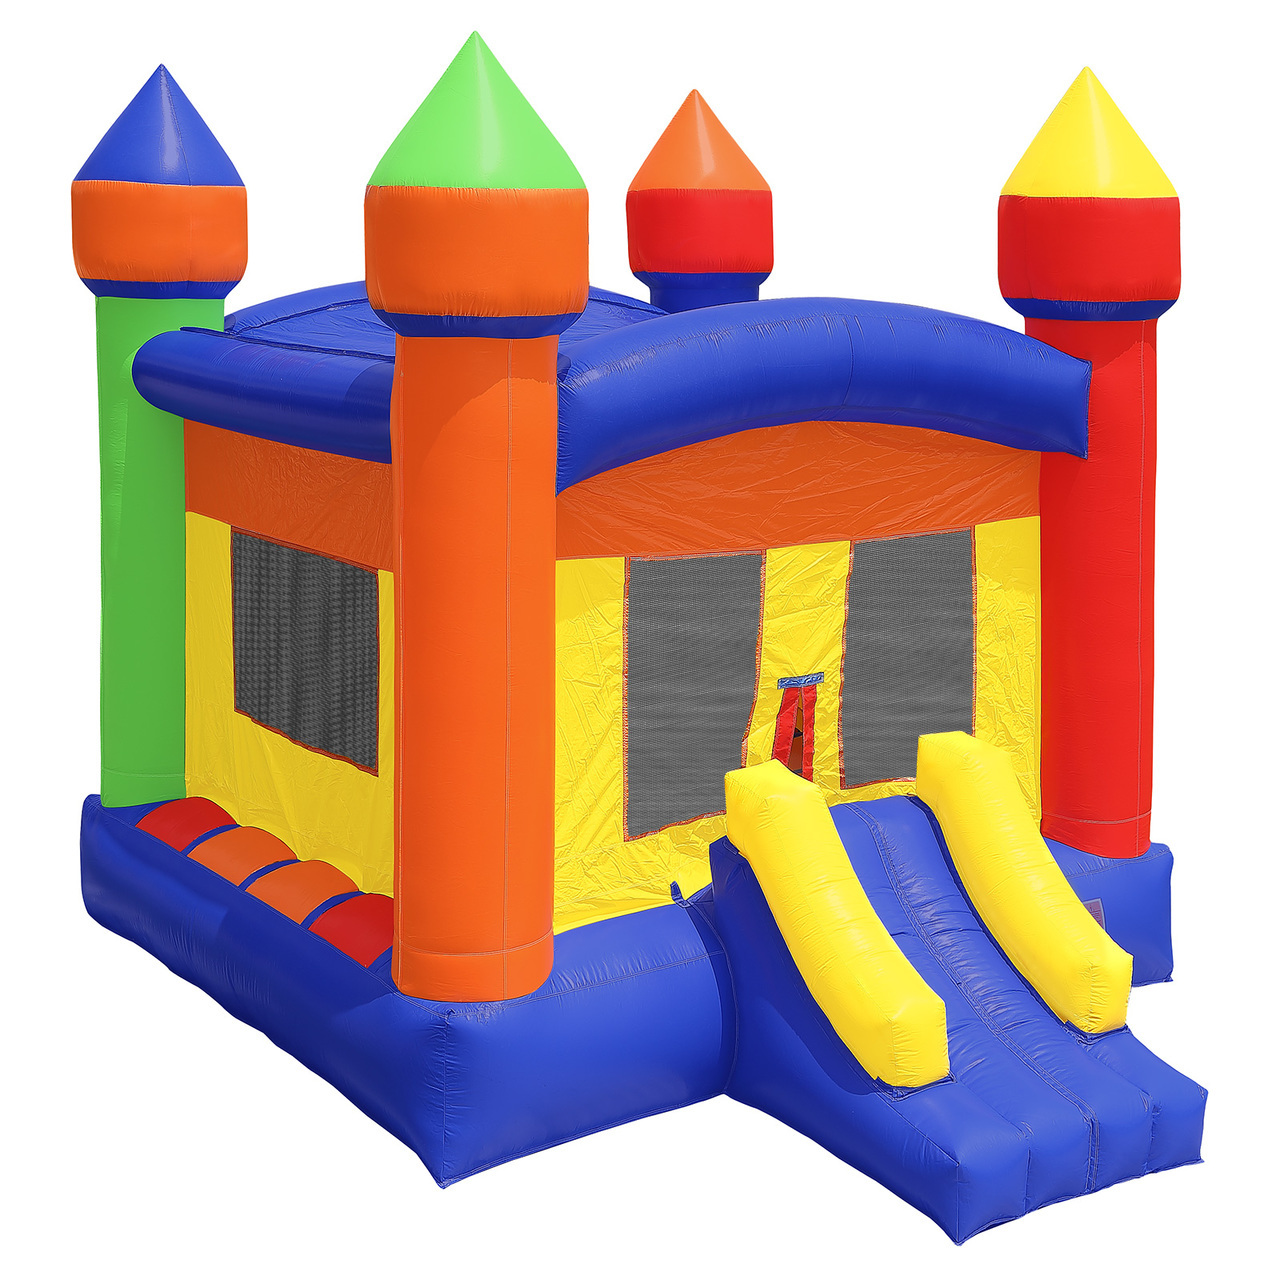 bounce house clipart at getdrawings com free for personal use rh getdrawings com bounce house clip art free bouncy house clipart black and white